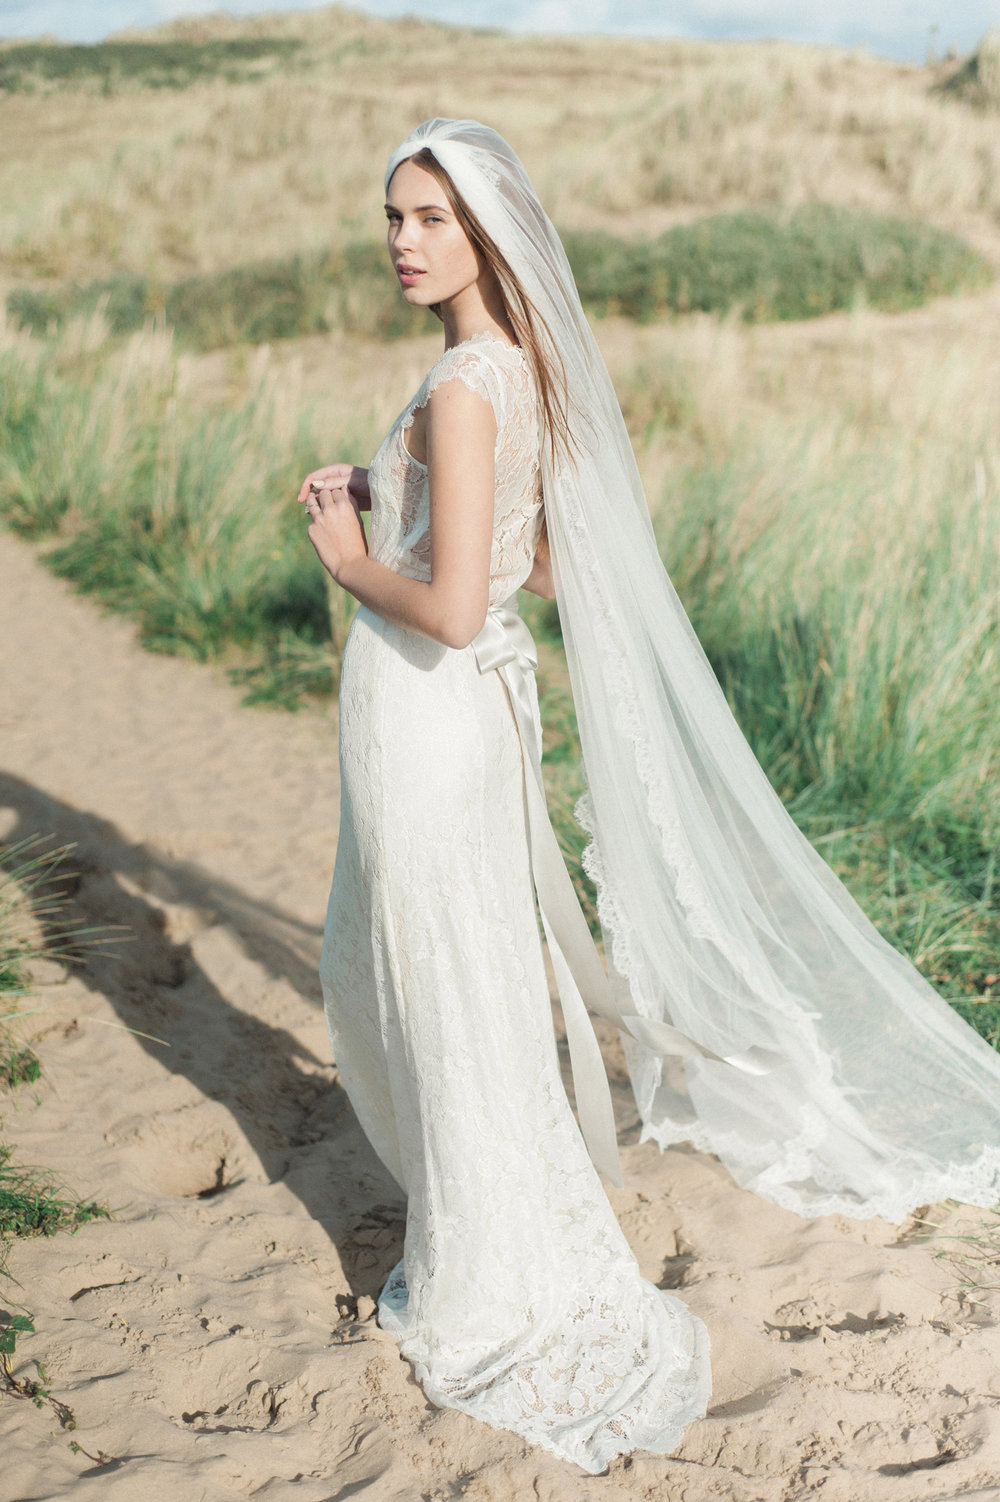 Kate-Beaumont-Wedding-Dresses-Formby-Beach-Emma-Pilkington-5.jpg